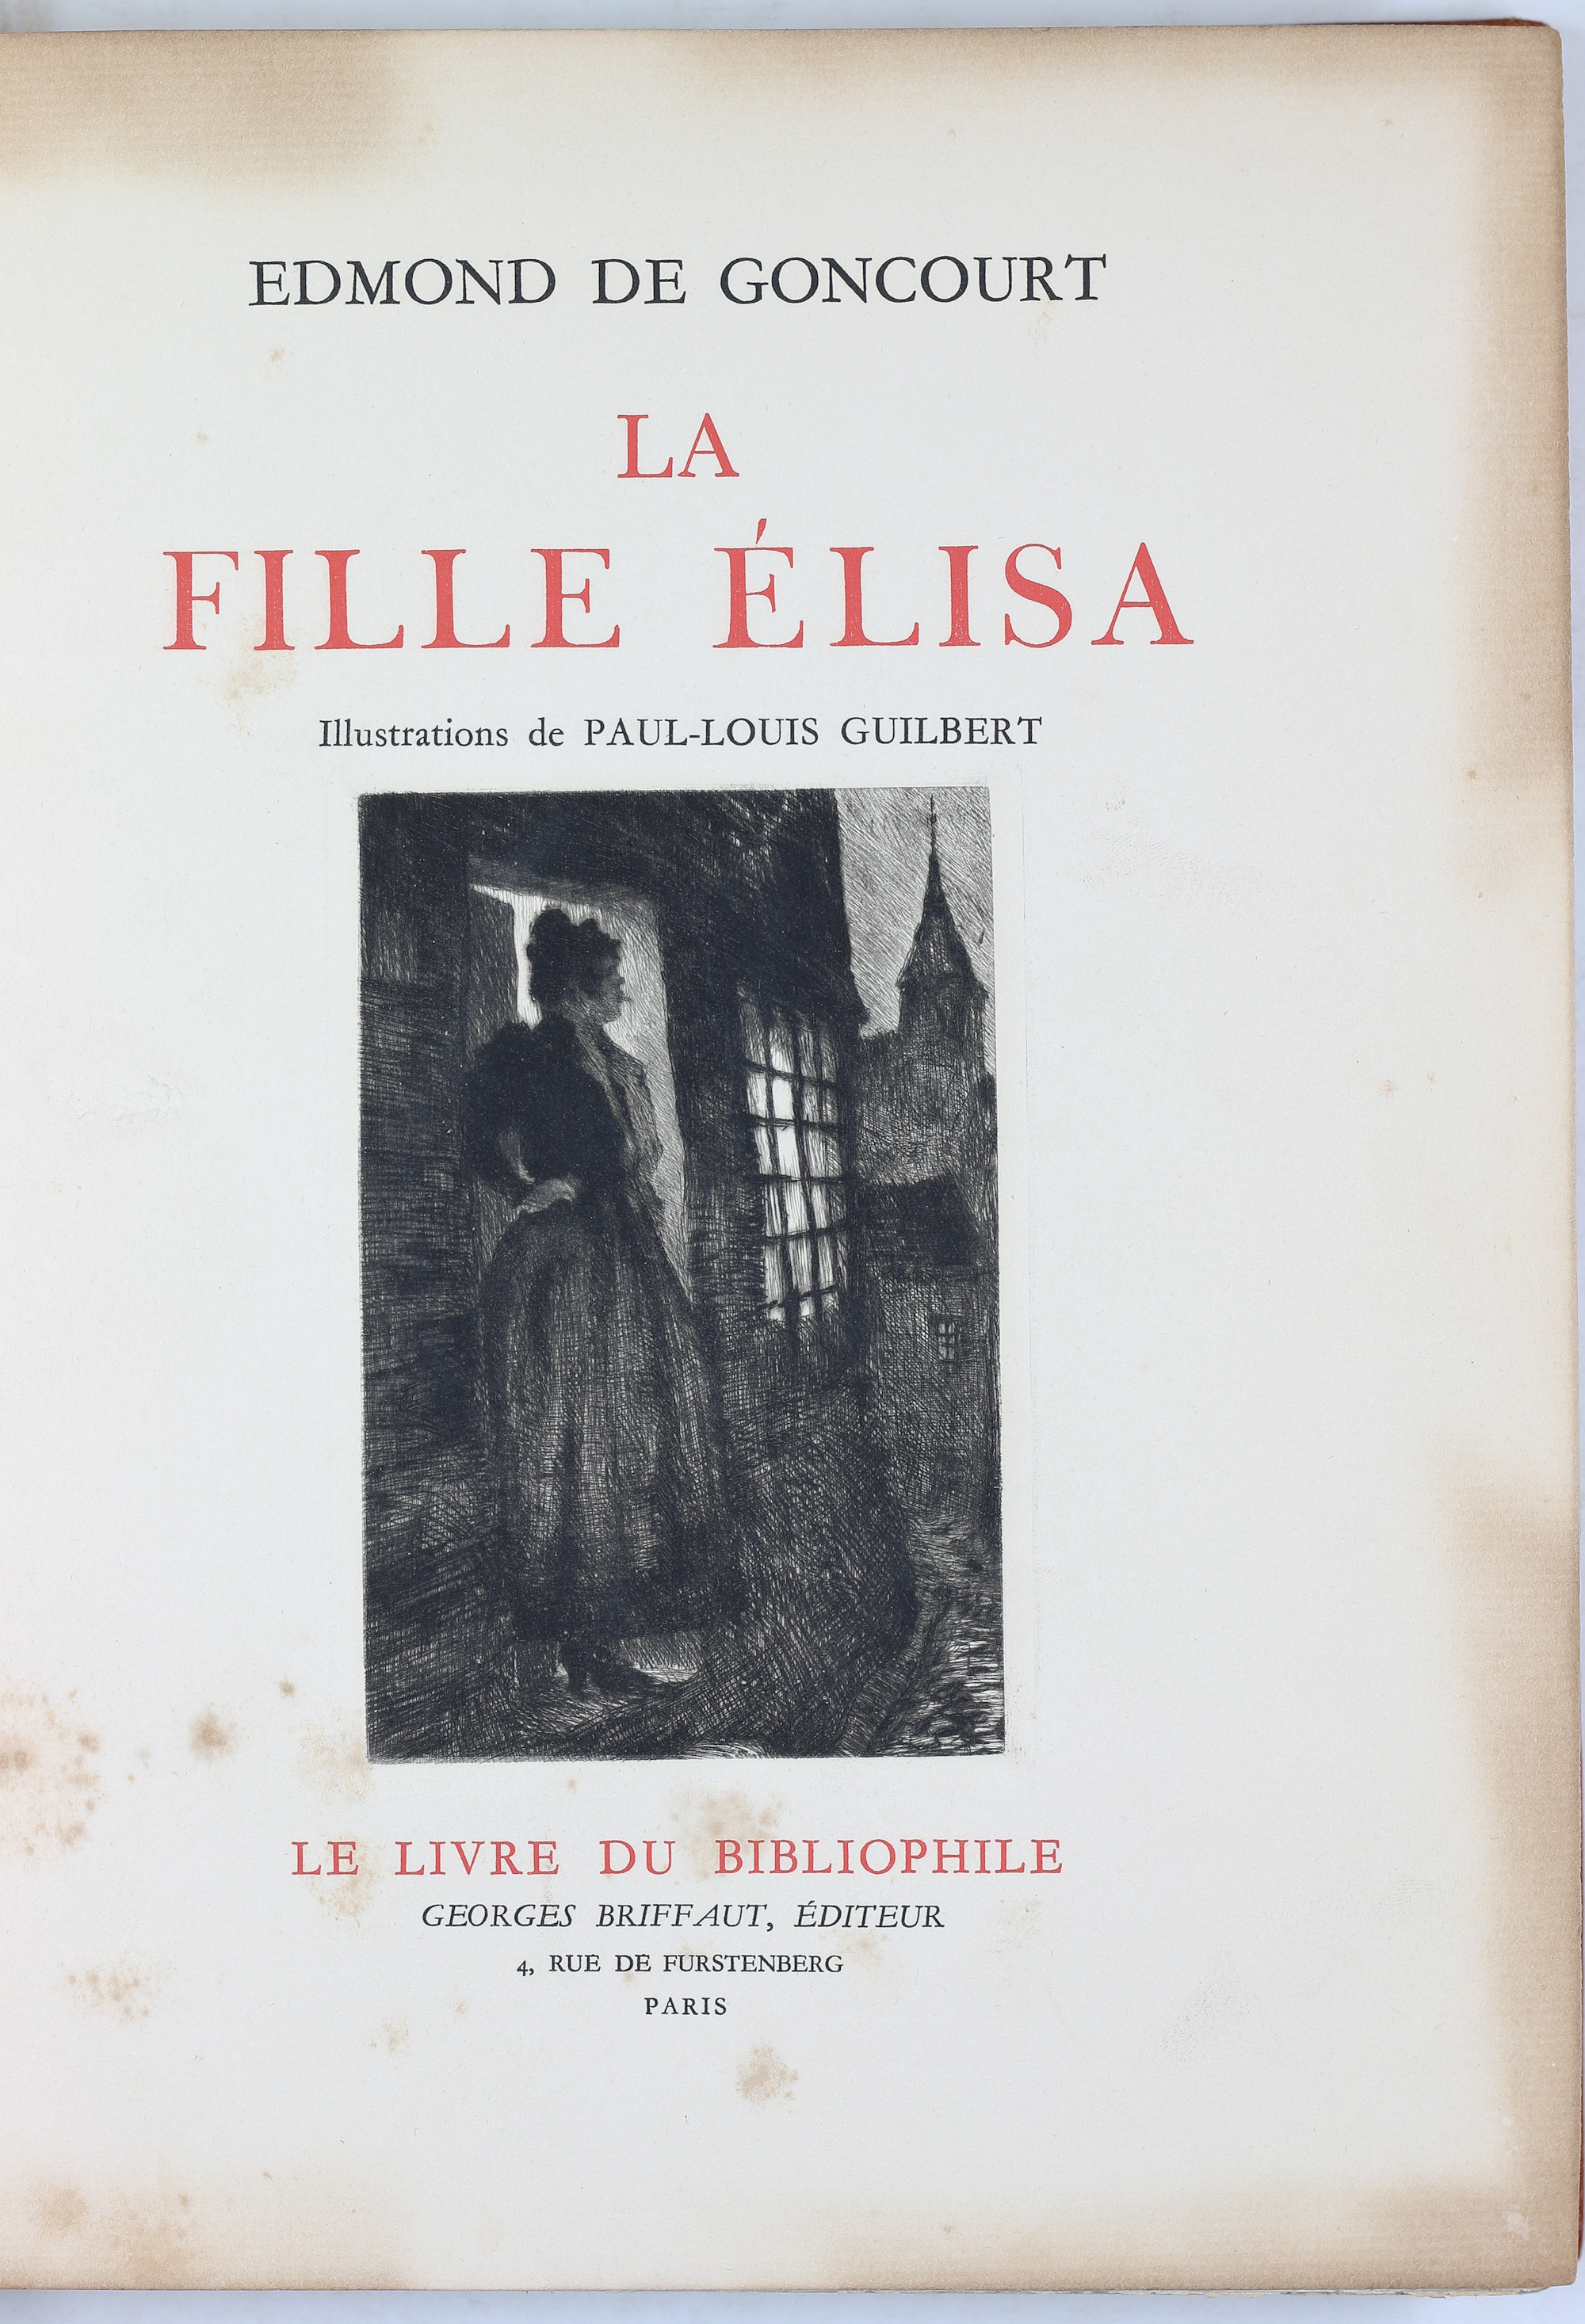 La fille Élisa, Edmmond de Goncourt, illustration de Paul-Louis Guilbert